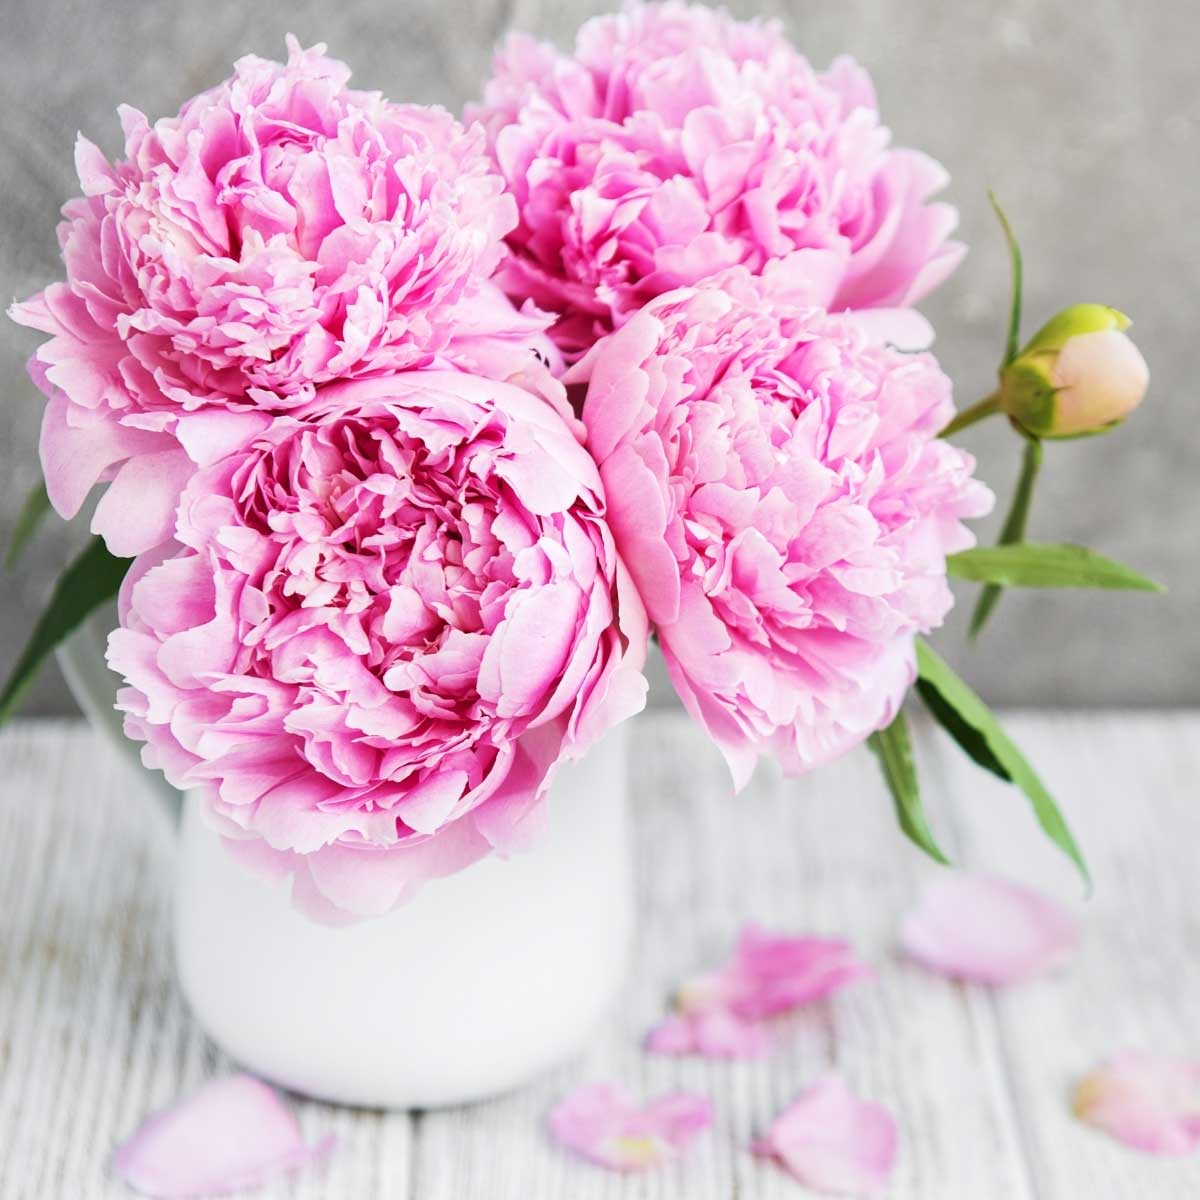 Pink peonies in a vase on a white wooden table